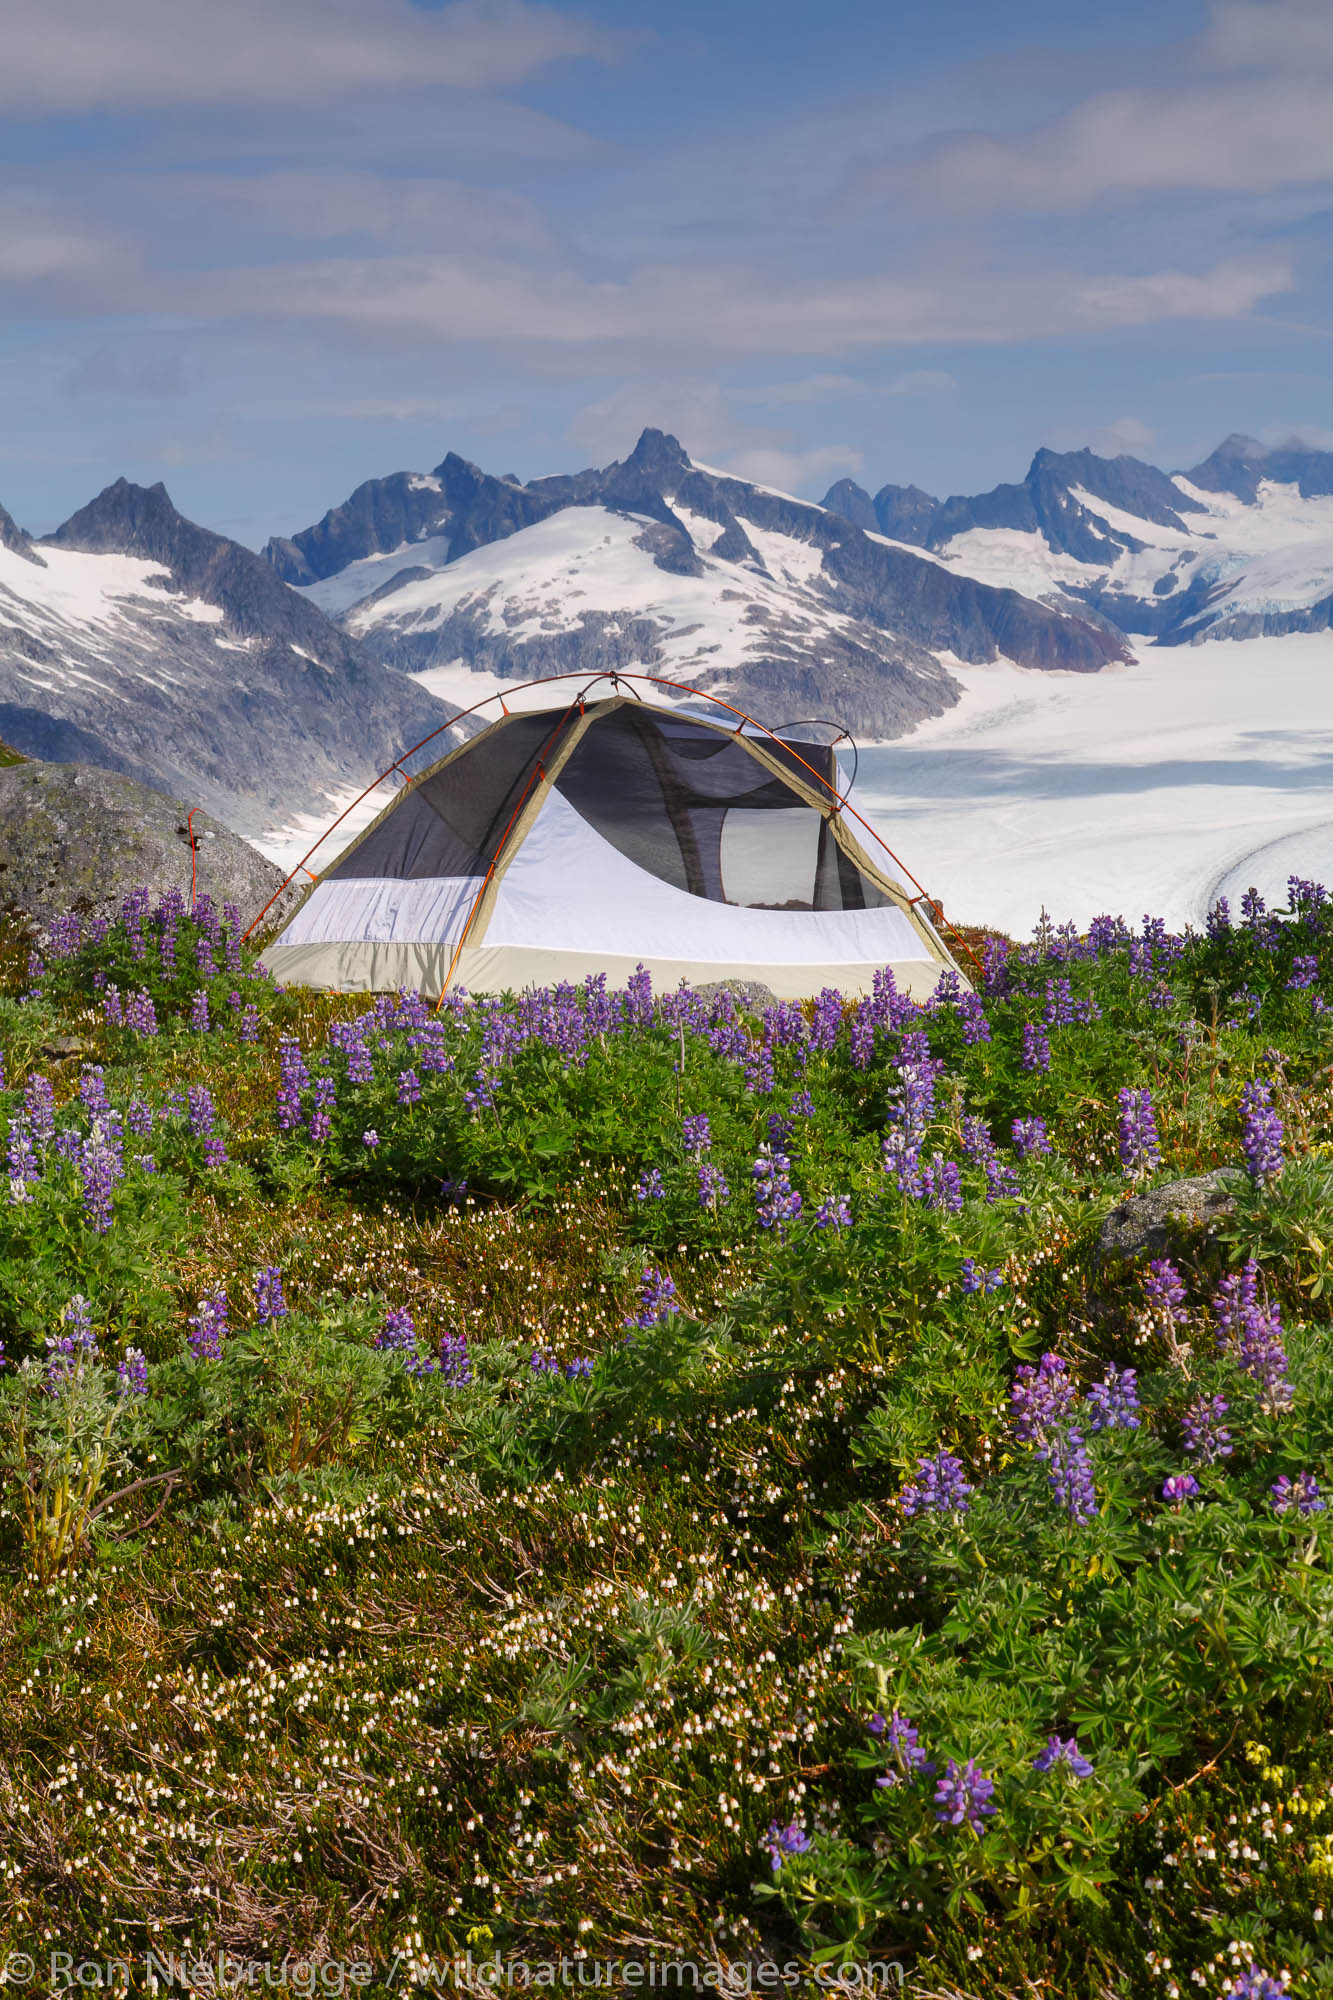 Camping on Mount Stroller White above the Mendenhall Glacier, Tongass National Forest, Alaska.